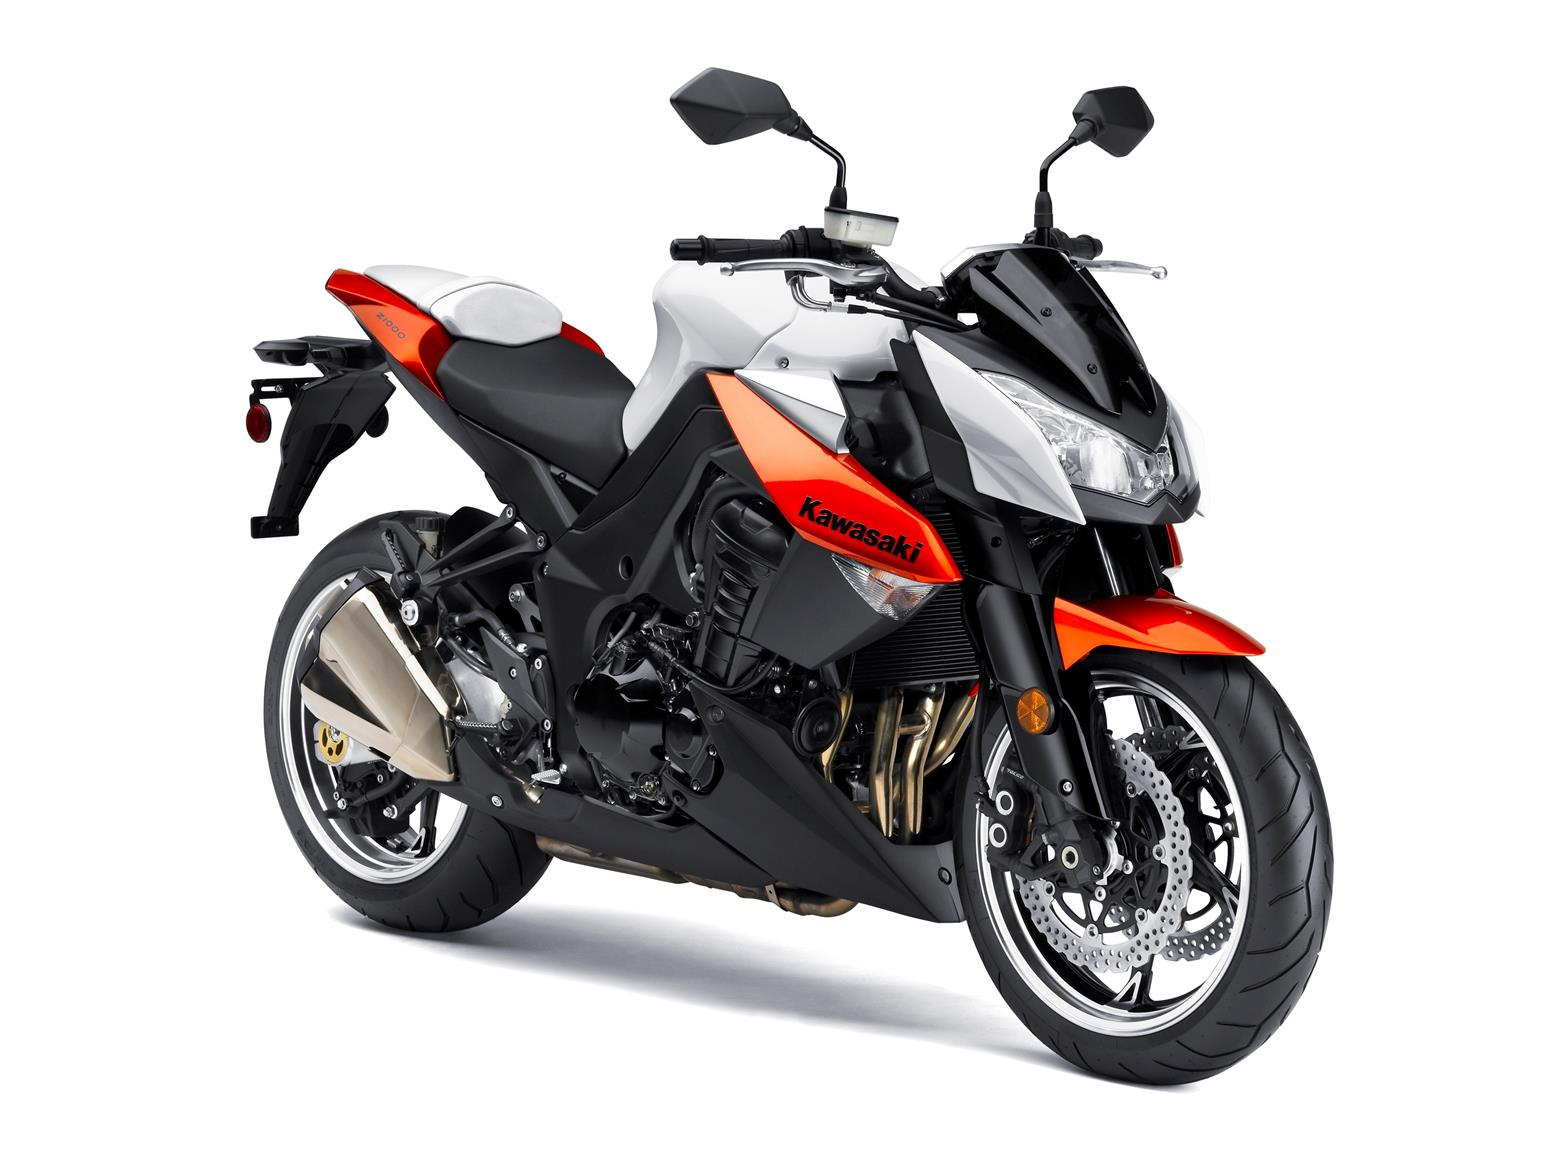 new kawasaki z1000 gets new engine and chassis. Black Bedroom Furniture Sets. Home Design Ideas